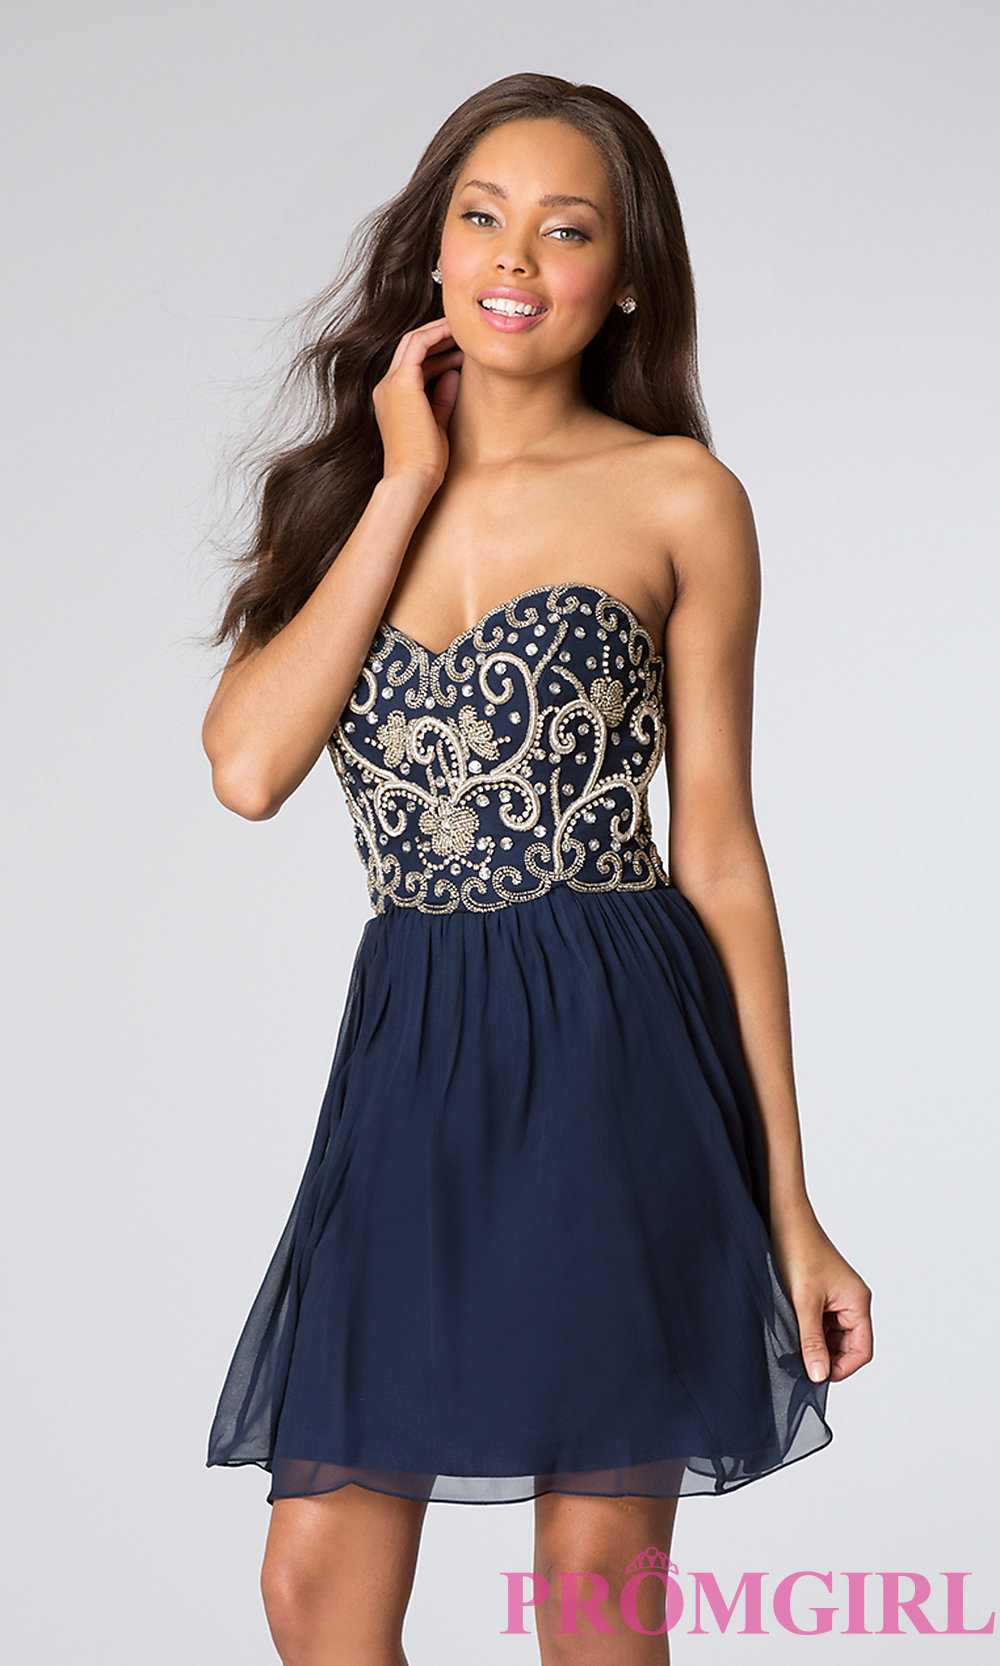 Strapless Blue Cocktail Dress by Sean